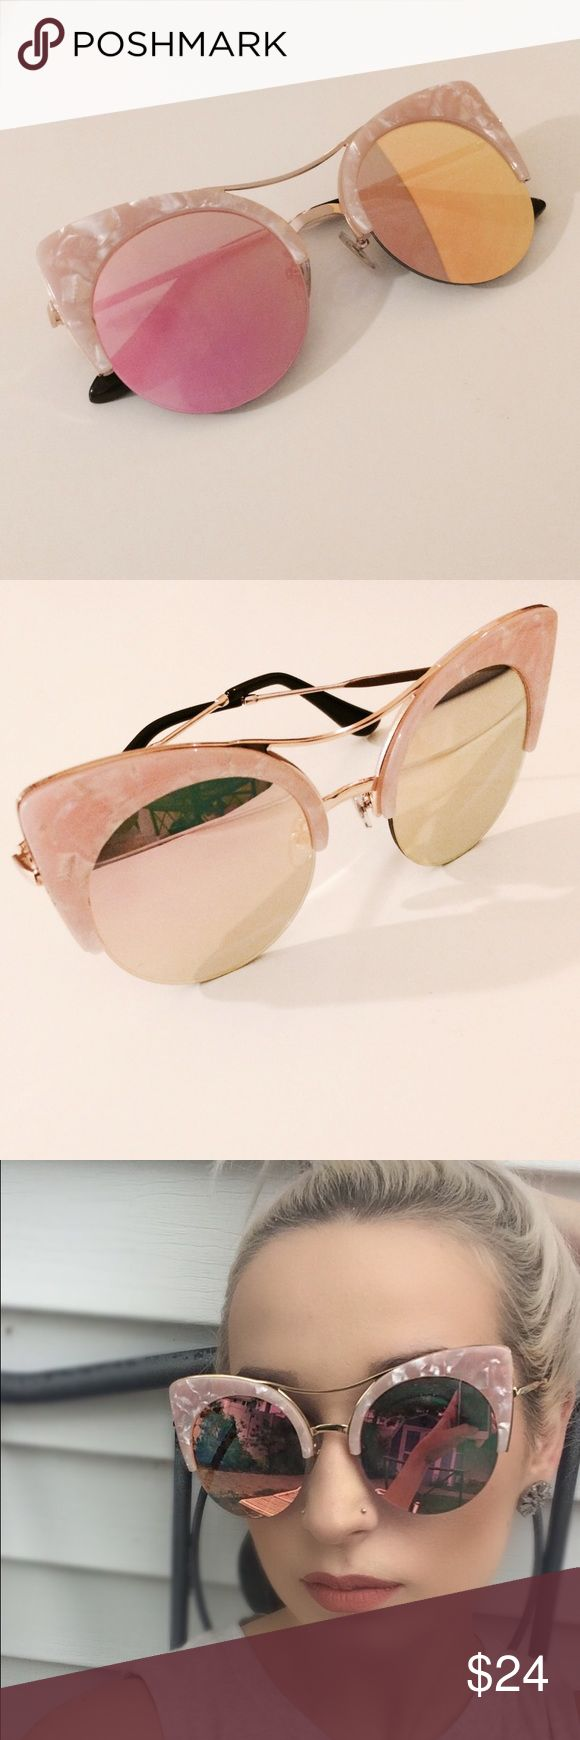 Pink Mirrored Cat Eye Sunglasses NWTR. Brand New in retail packaging. Pink Marbled cat eye sunglasses with mirrored lenses. Nasty Gal listed for exposure. 10% Discount when bundled with 2 or more items! ⚠️No Trades⚠️ Nasty Gal Accessories Sunglasses